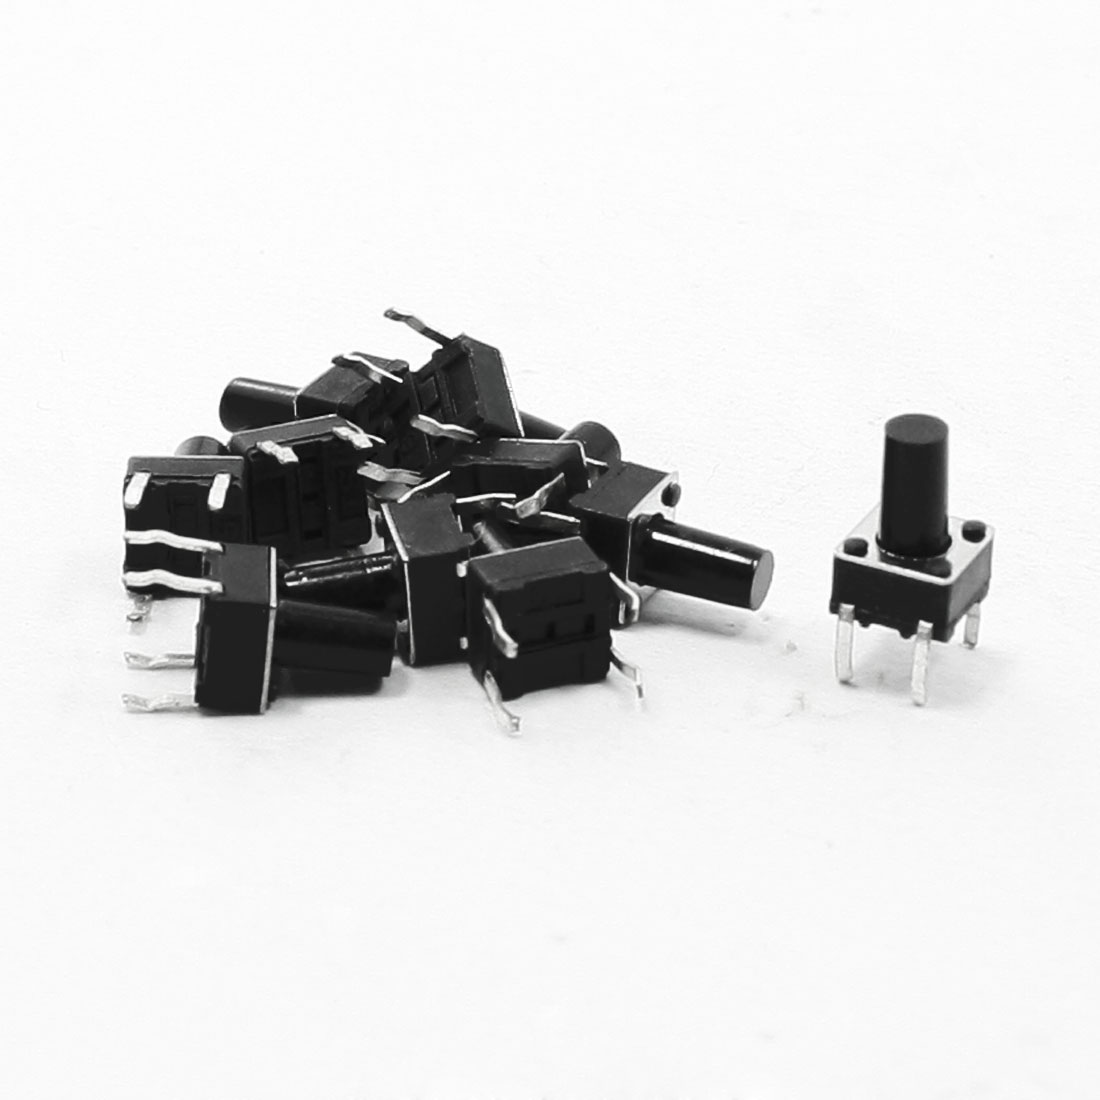 10 Pcs 6x6x9.5mm 4 Pins DIP PCB Momentary Tactile Tact Push Button Switch